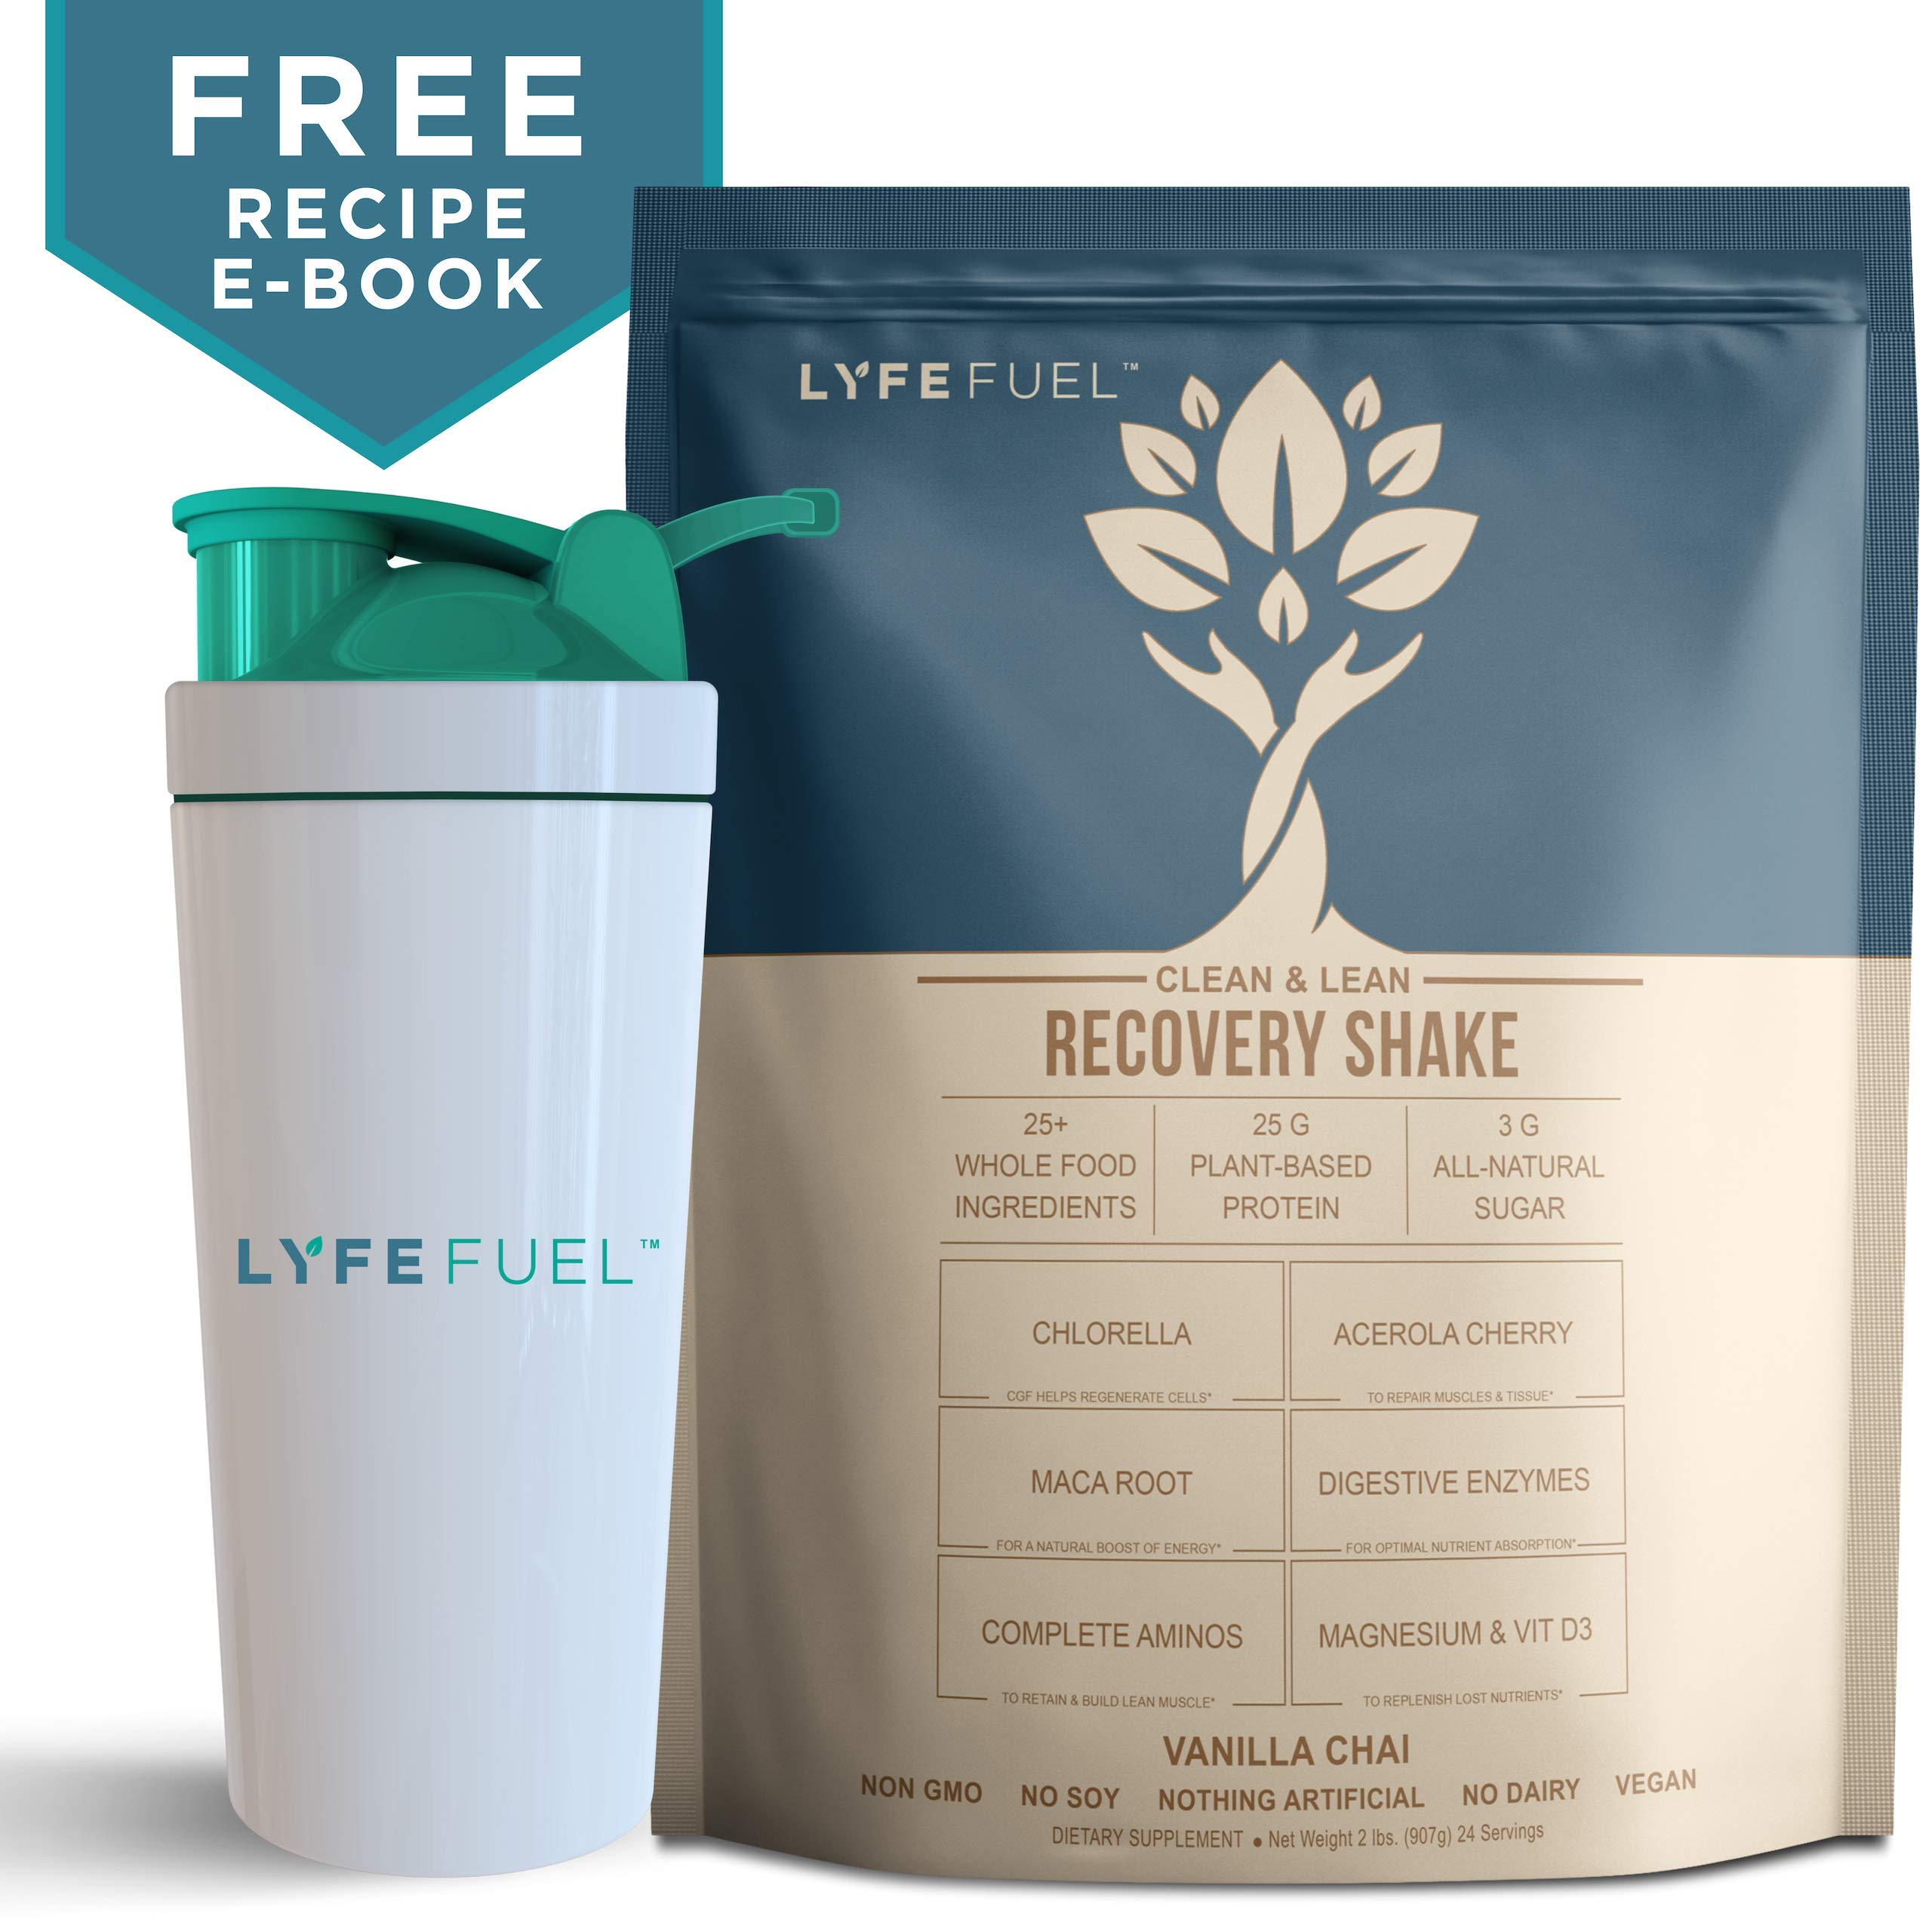 Vegan Protein Powder with Shaker Bottle by LyfeFuel - Plant Based Post-Workout Superfood Mix for Recovery & Muscle Building (Large Bag, Vanilla Chai)